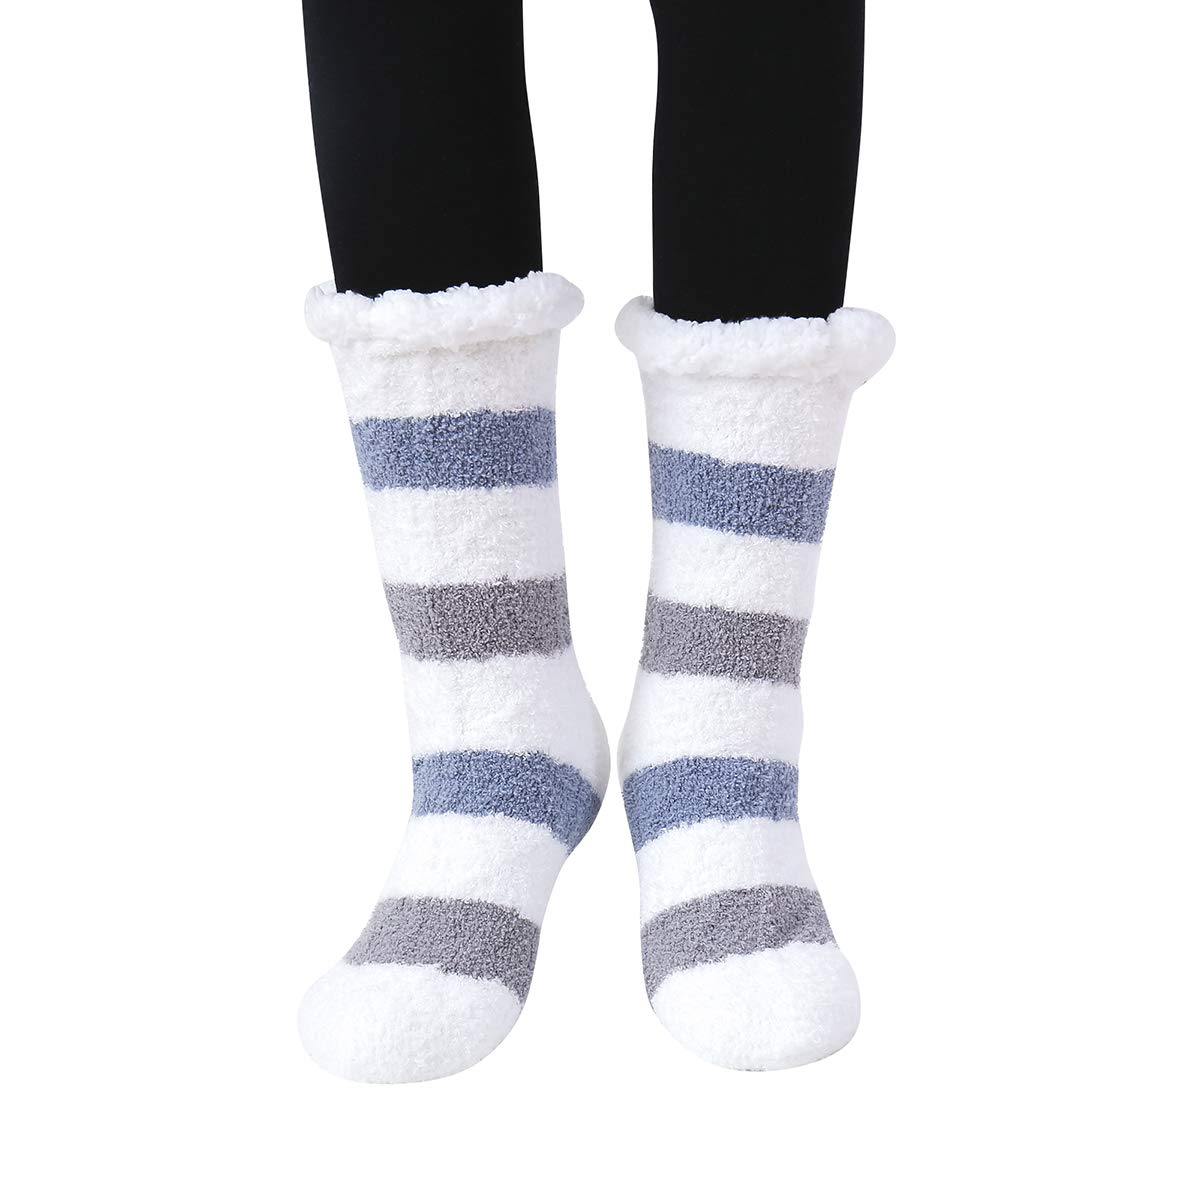 0b2f1bb107764 SKOLA 1 Women's Winter Soft Thick Warm Cozy Fuzzy Fleece-lined Gift  Grippers Slipper Socks Thermal Double Layer Crew(Blue Gray Stripe) at  Amazon Women's ...